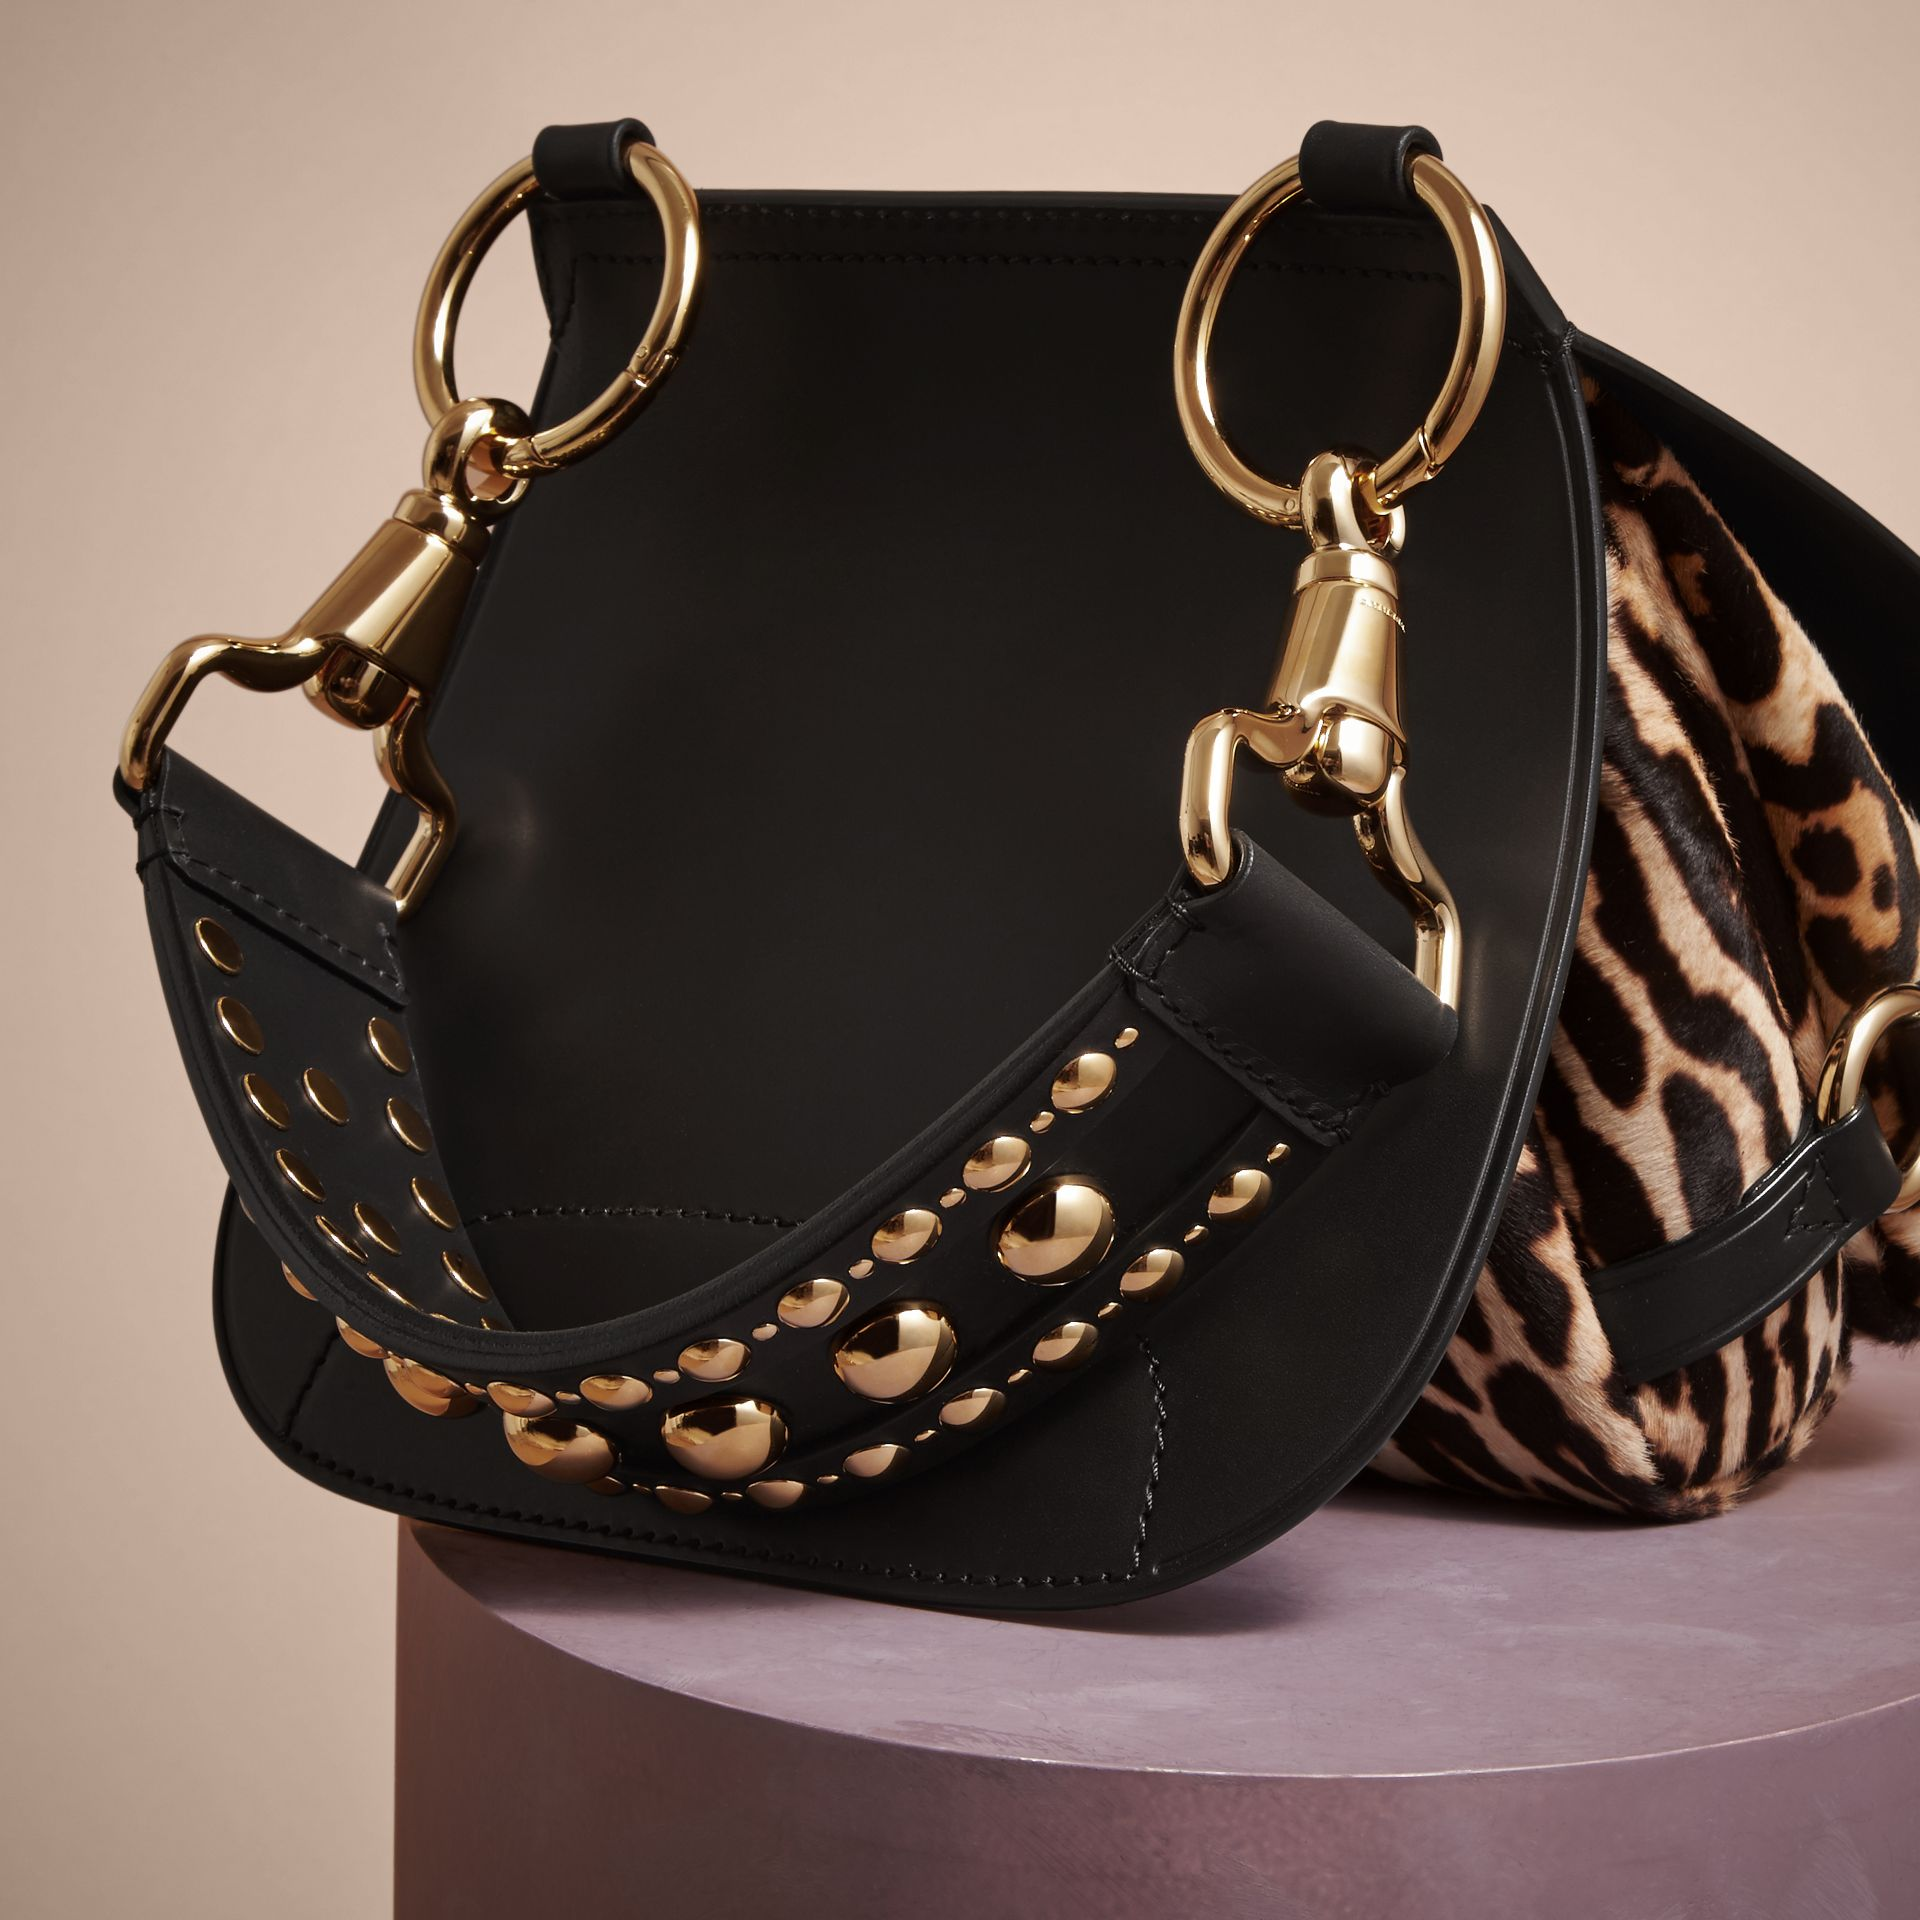 Borsa The Bridle in pelle e cavallino (Nero) - Donna | Burberry - immagine della galleria 5